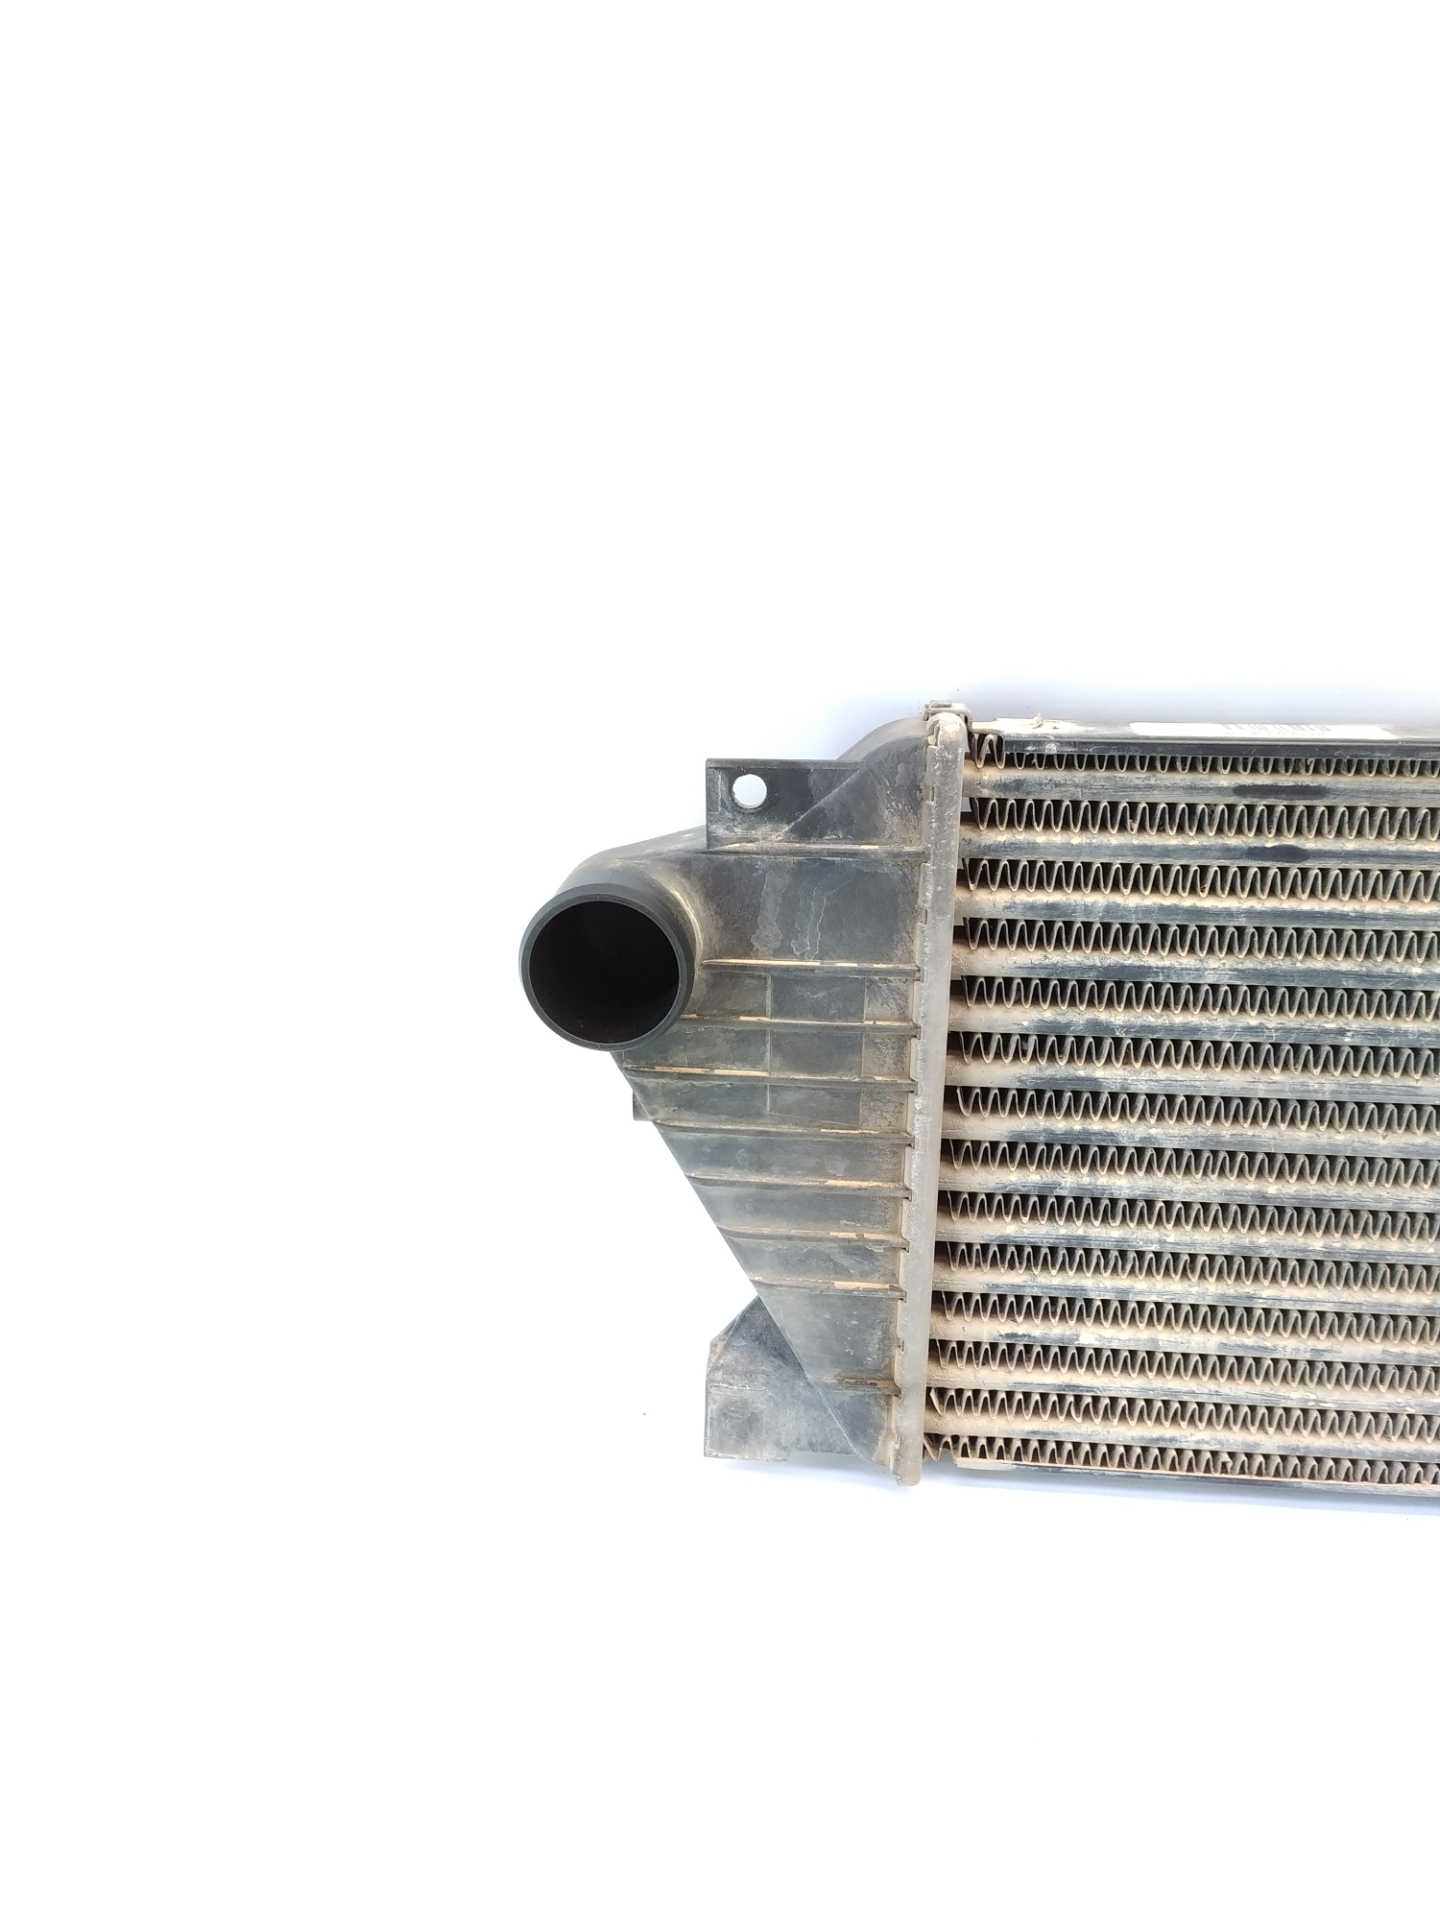 INTERCOOLER MERCEDES-BENZ CLASE M ML 270 CDI (163.113) (120 KW / 163 CV) (12.1999 - 06.2005)